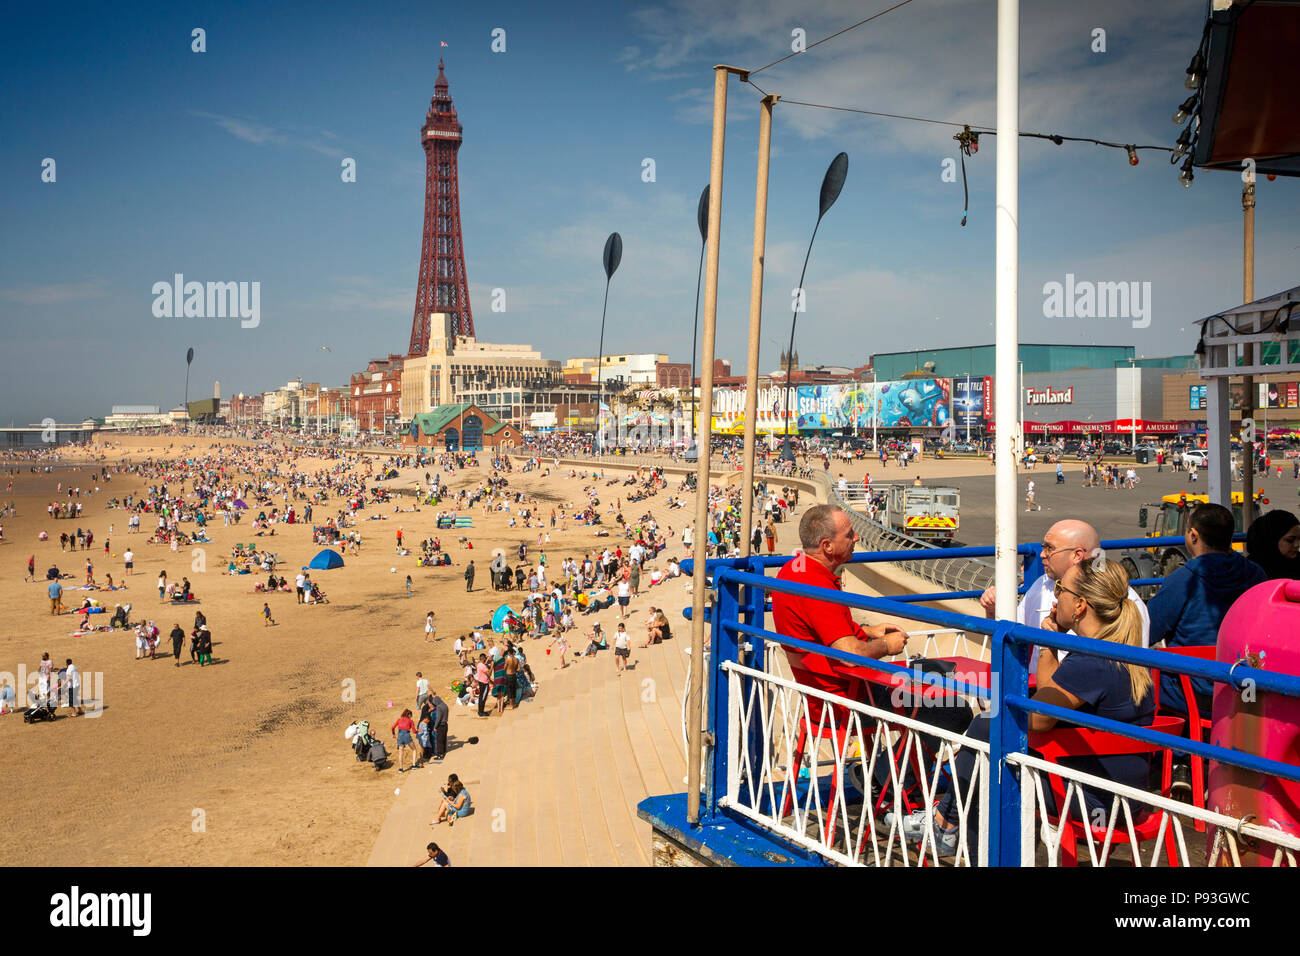 UK, England, Lancashire, Blackpool, beach from South Pier - Stock Image